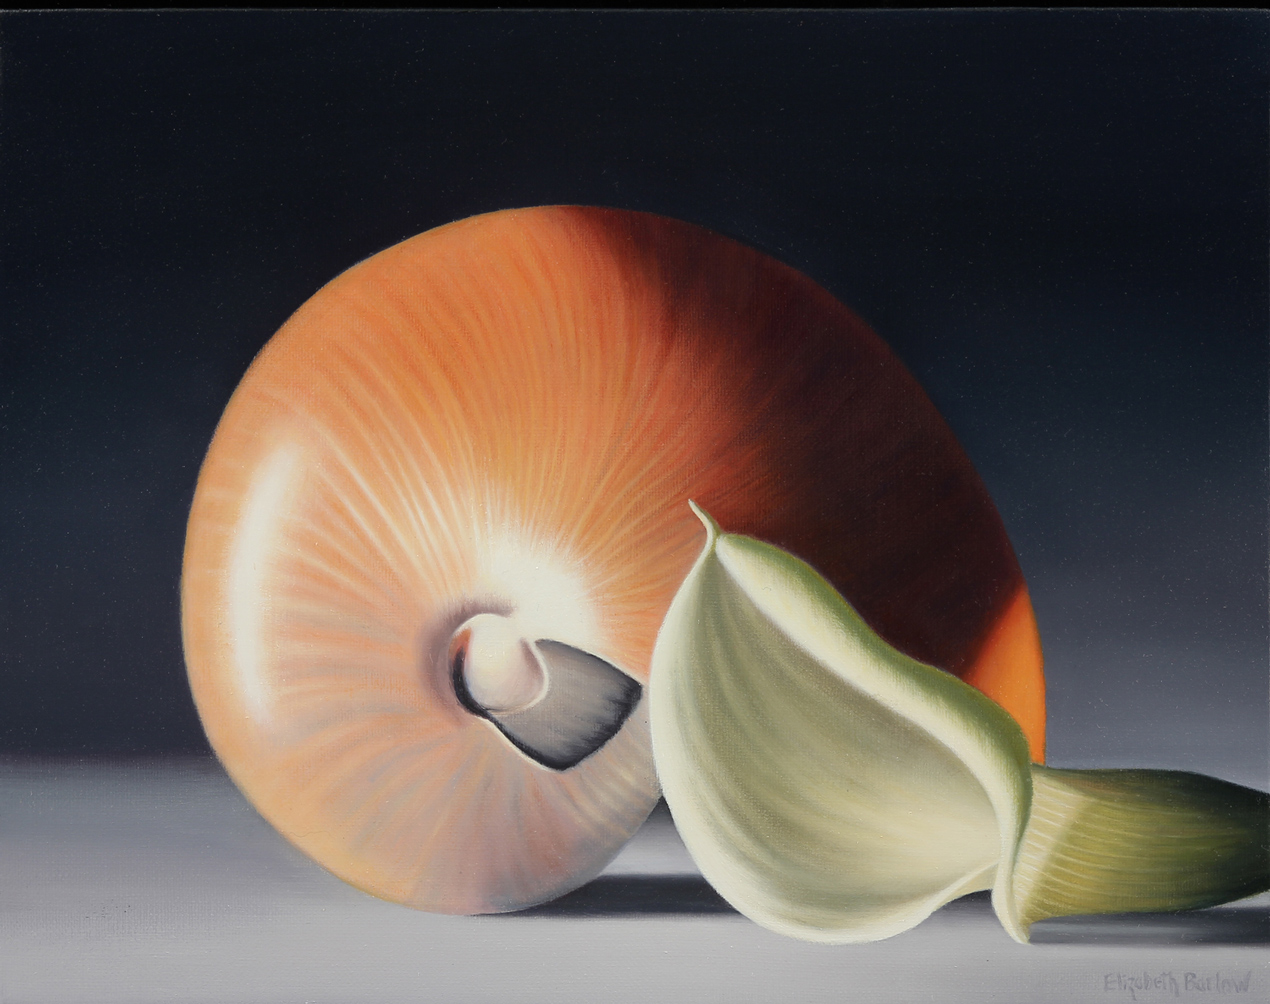 Dreaming of O'Keeffe